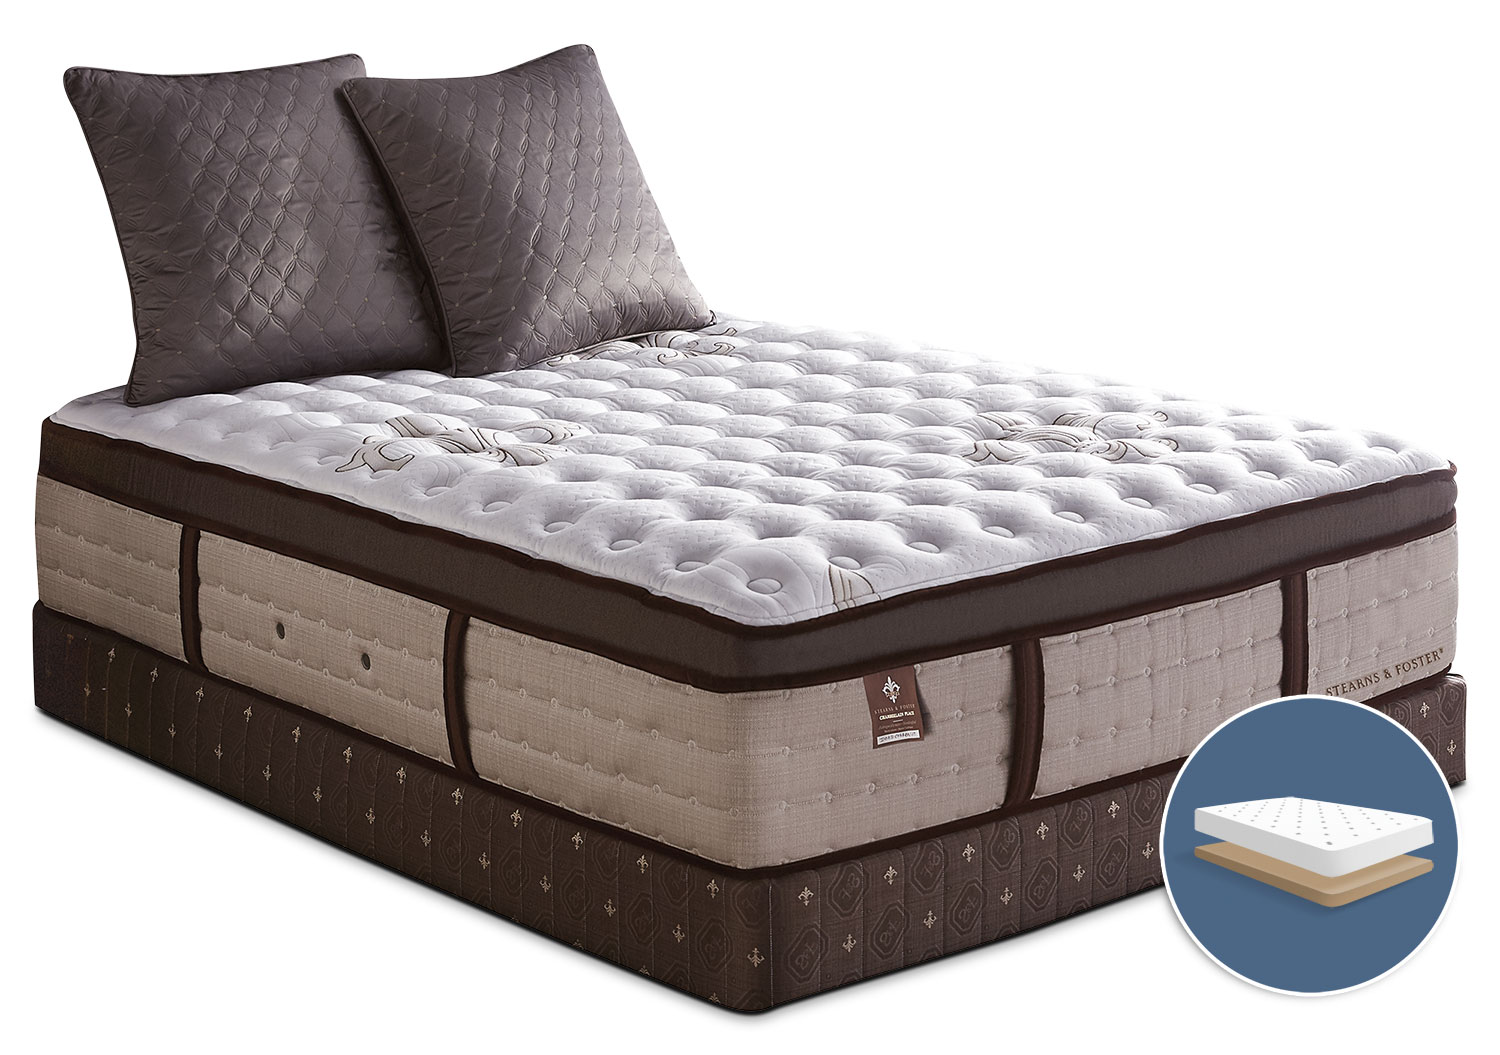 Stearns & Foster Chamberlain Place Euro-Top Plush Low-Profile King Mattress Set